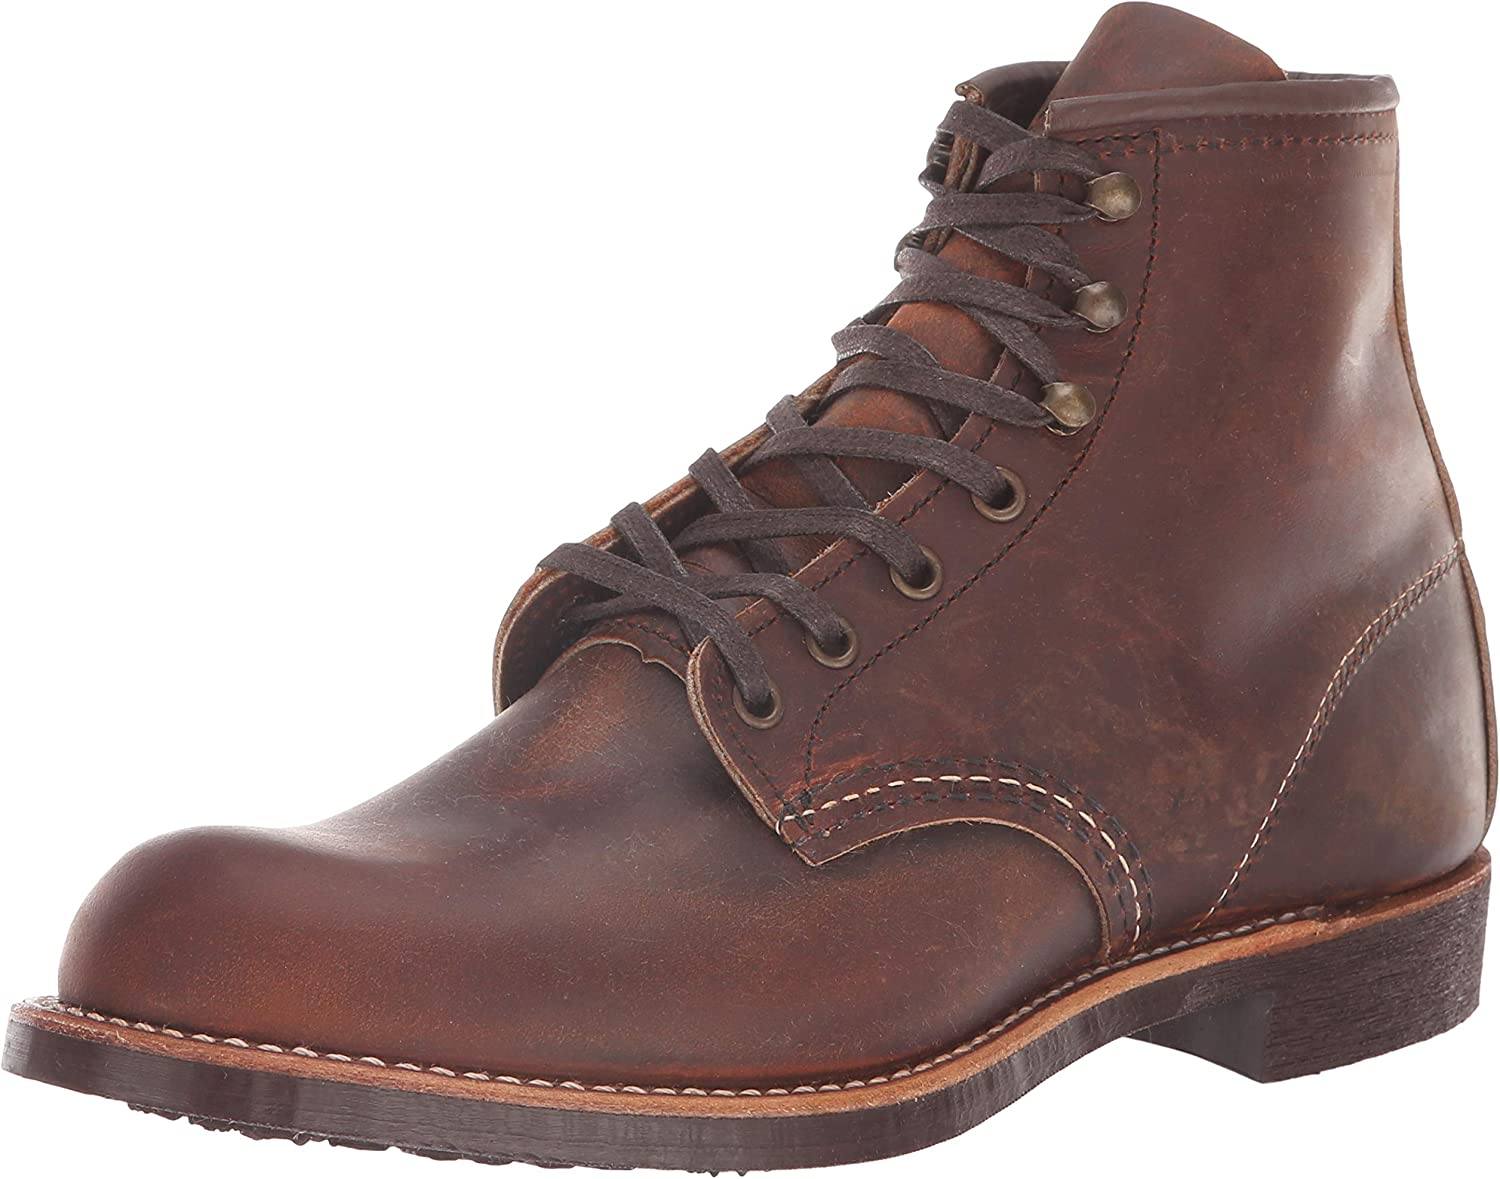 Men's Vintage Workwear Inspired Clothing Red Wing Heritage Mens Blacksmith Vibram Boot $289.95 AT vintagedancer.com